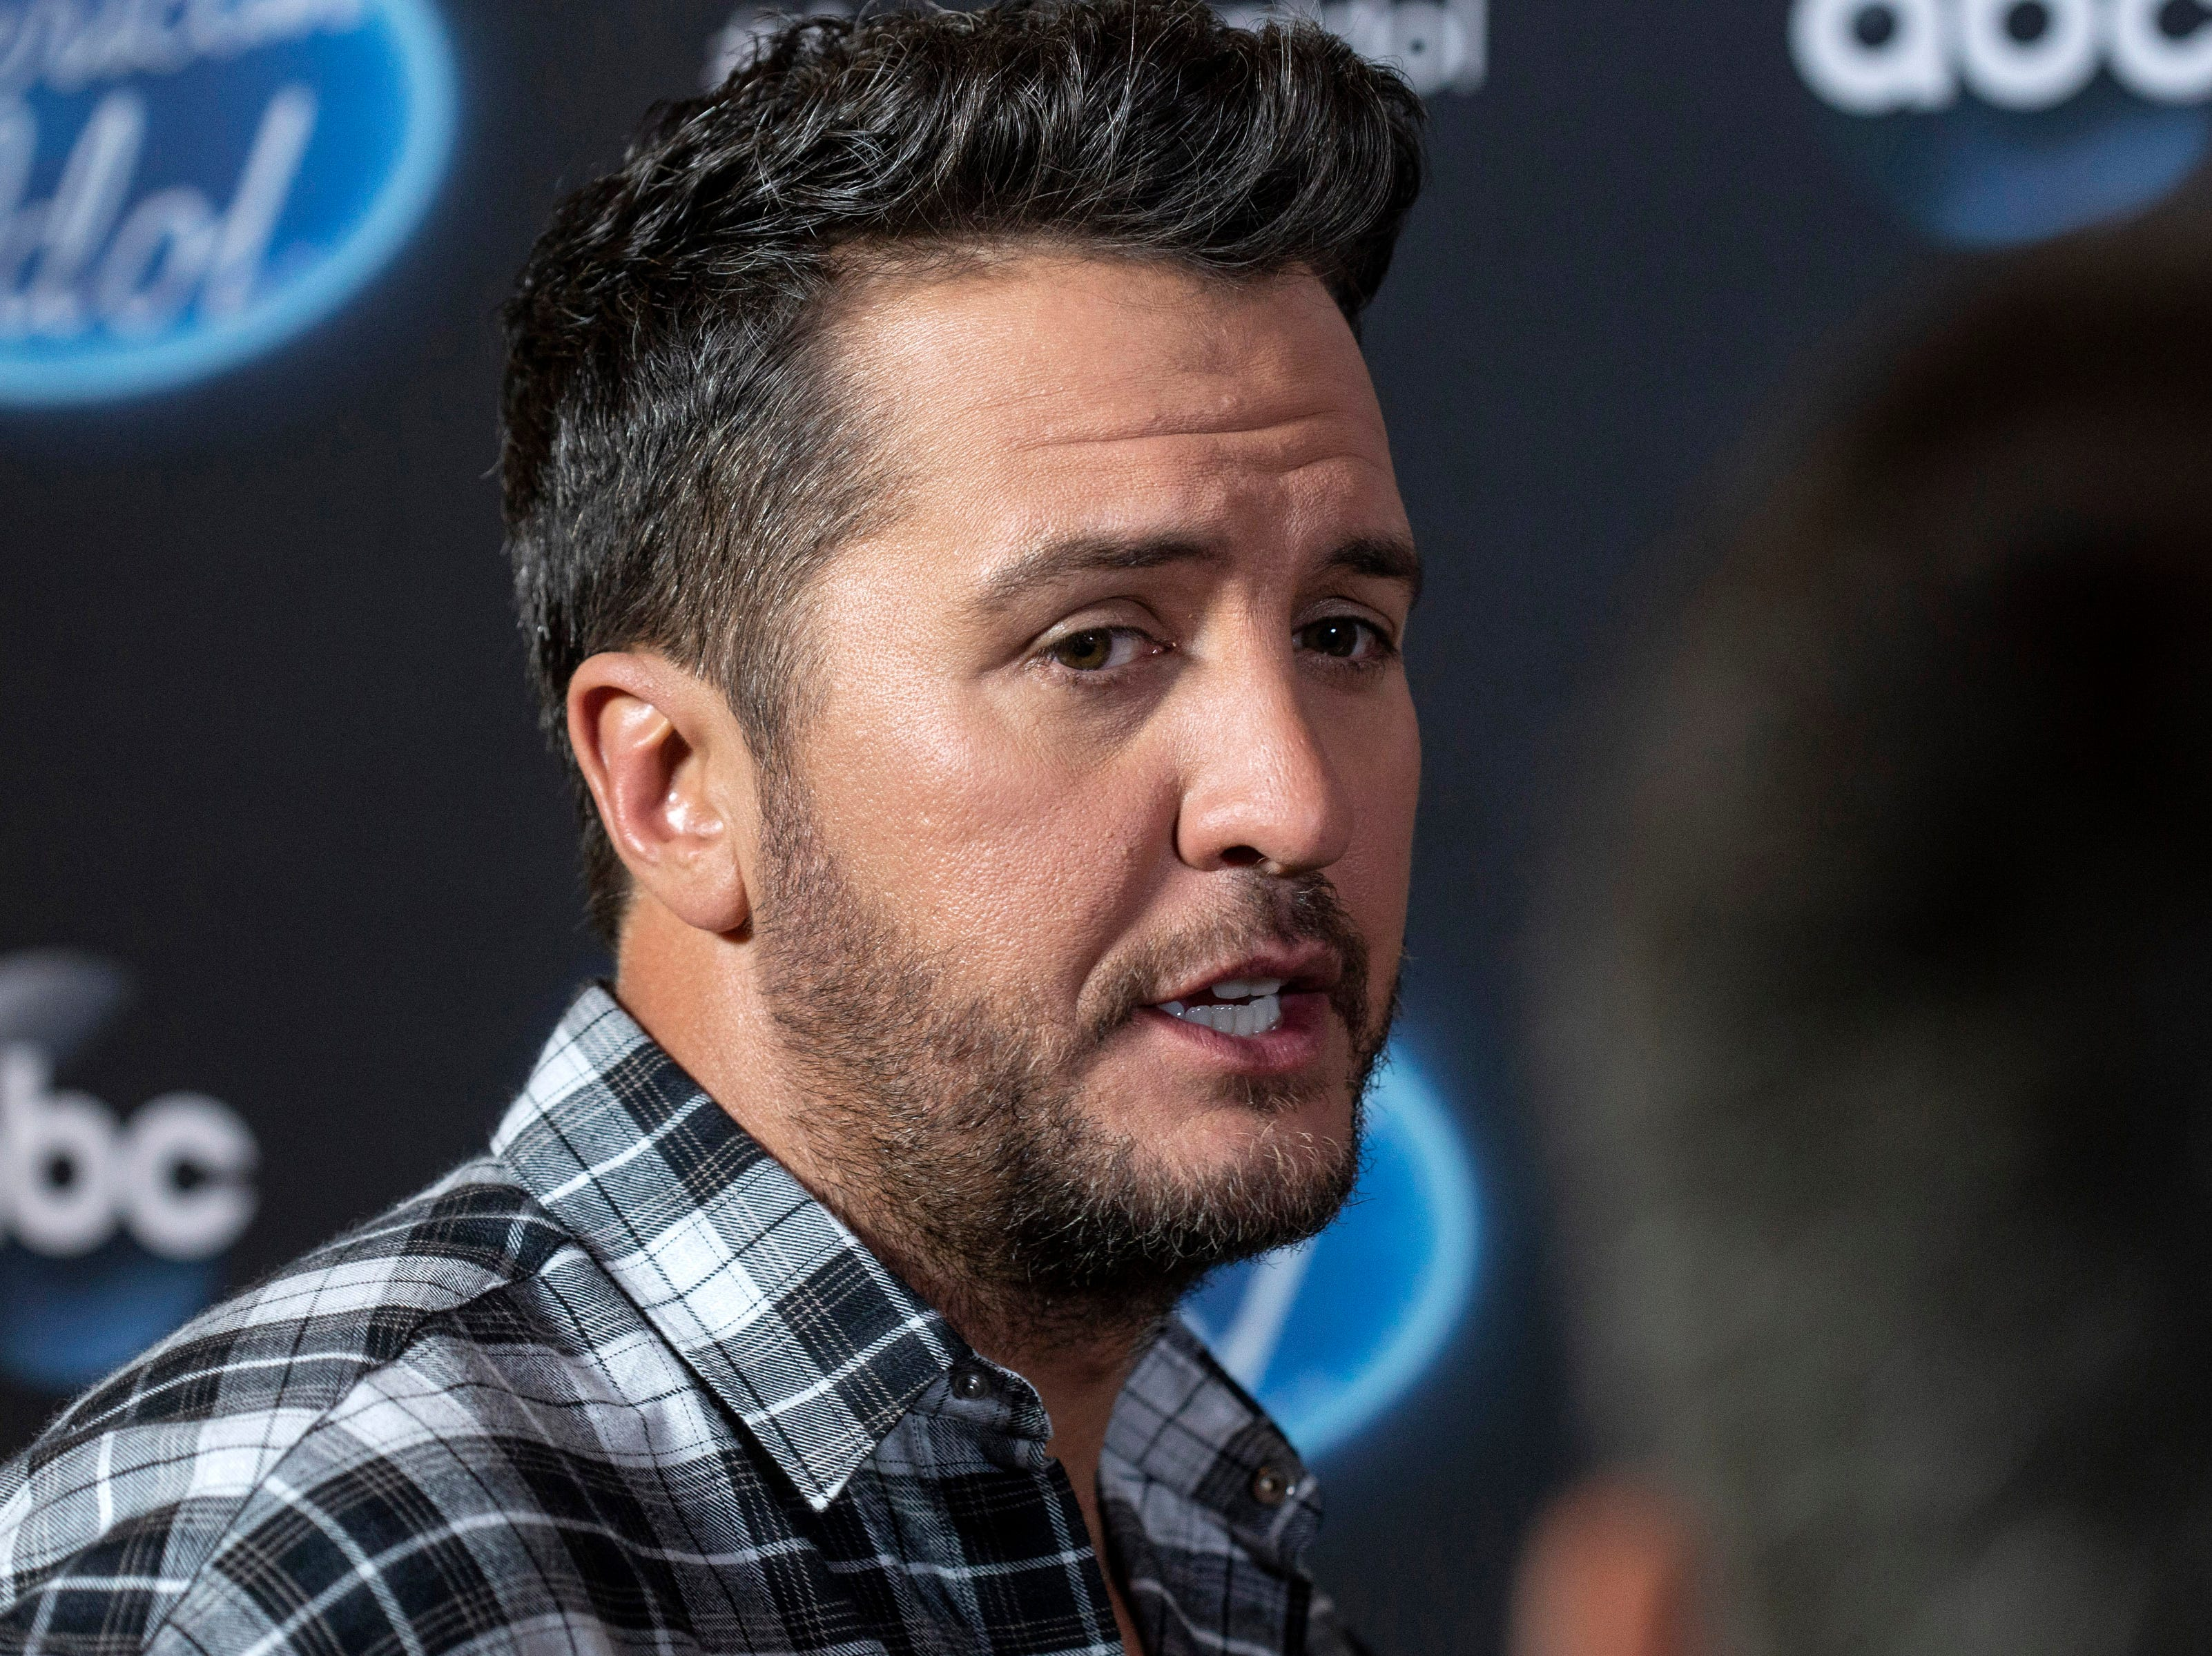 Country music star Luke Bryan spoke to the media on Tuesday night at the Ali Center during a break from his role as a judge on the TV show American Idol in Louisville, Ky. 10/23/18